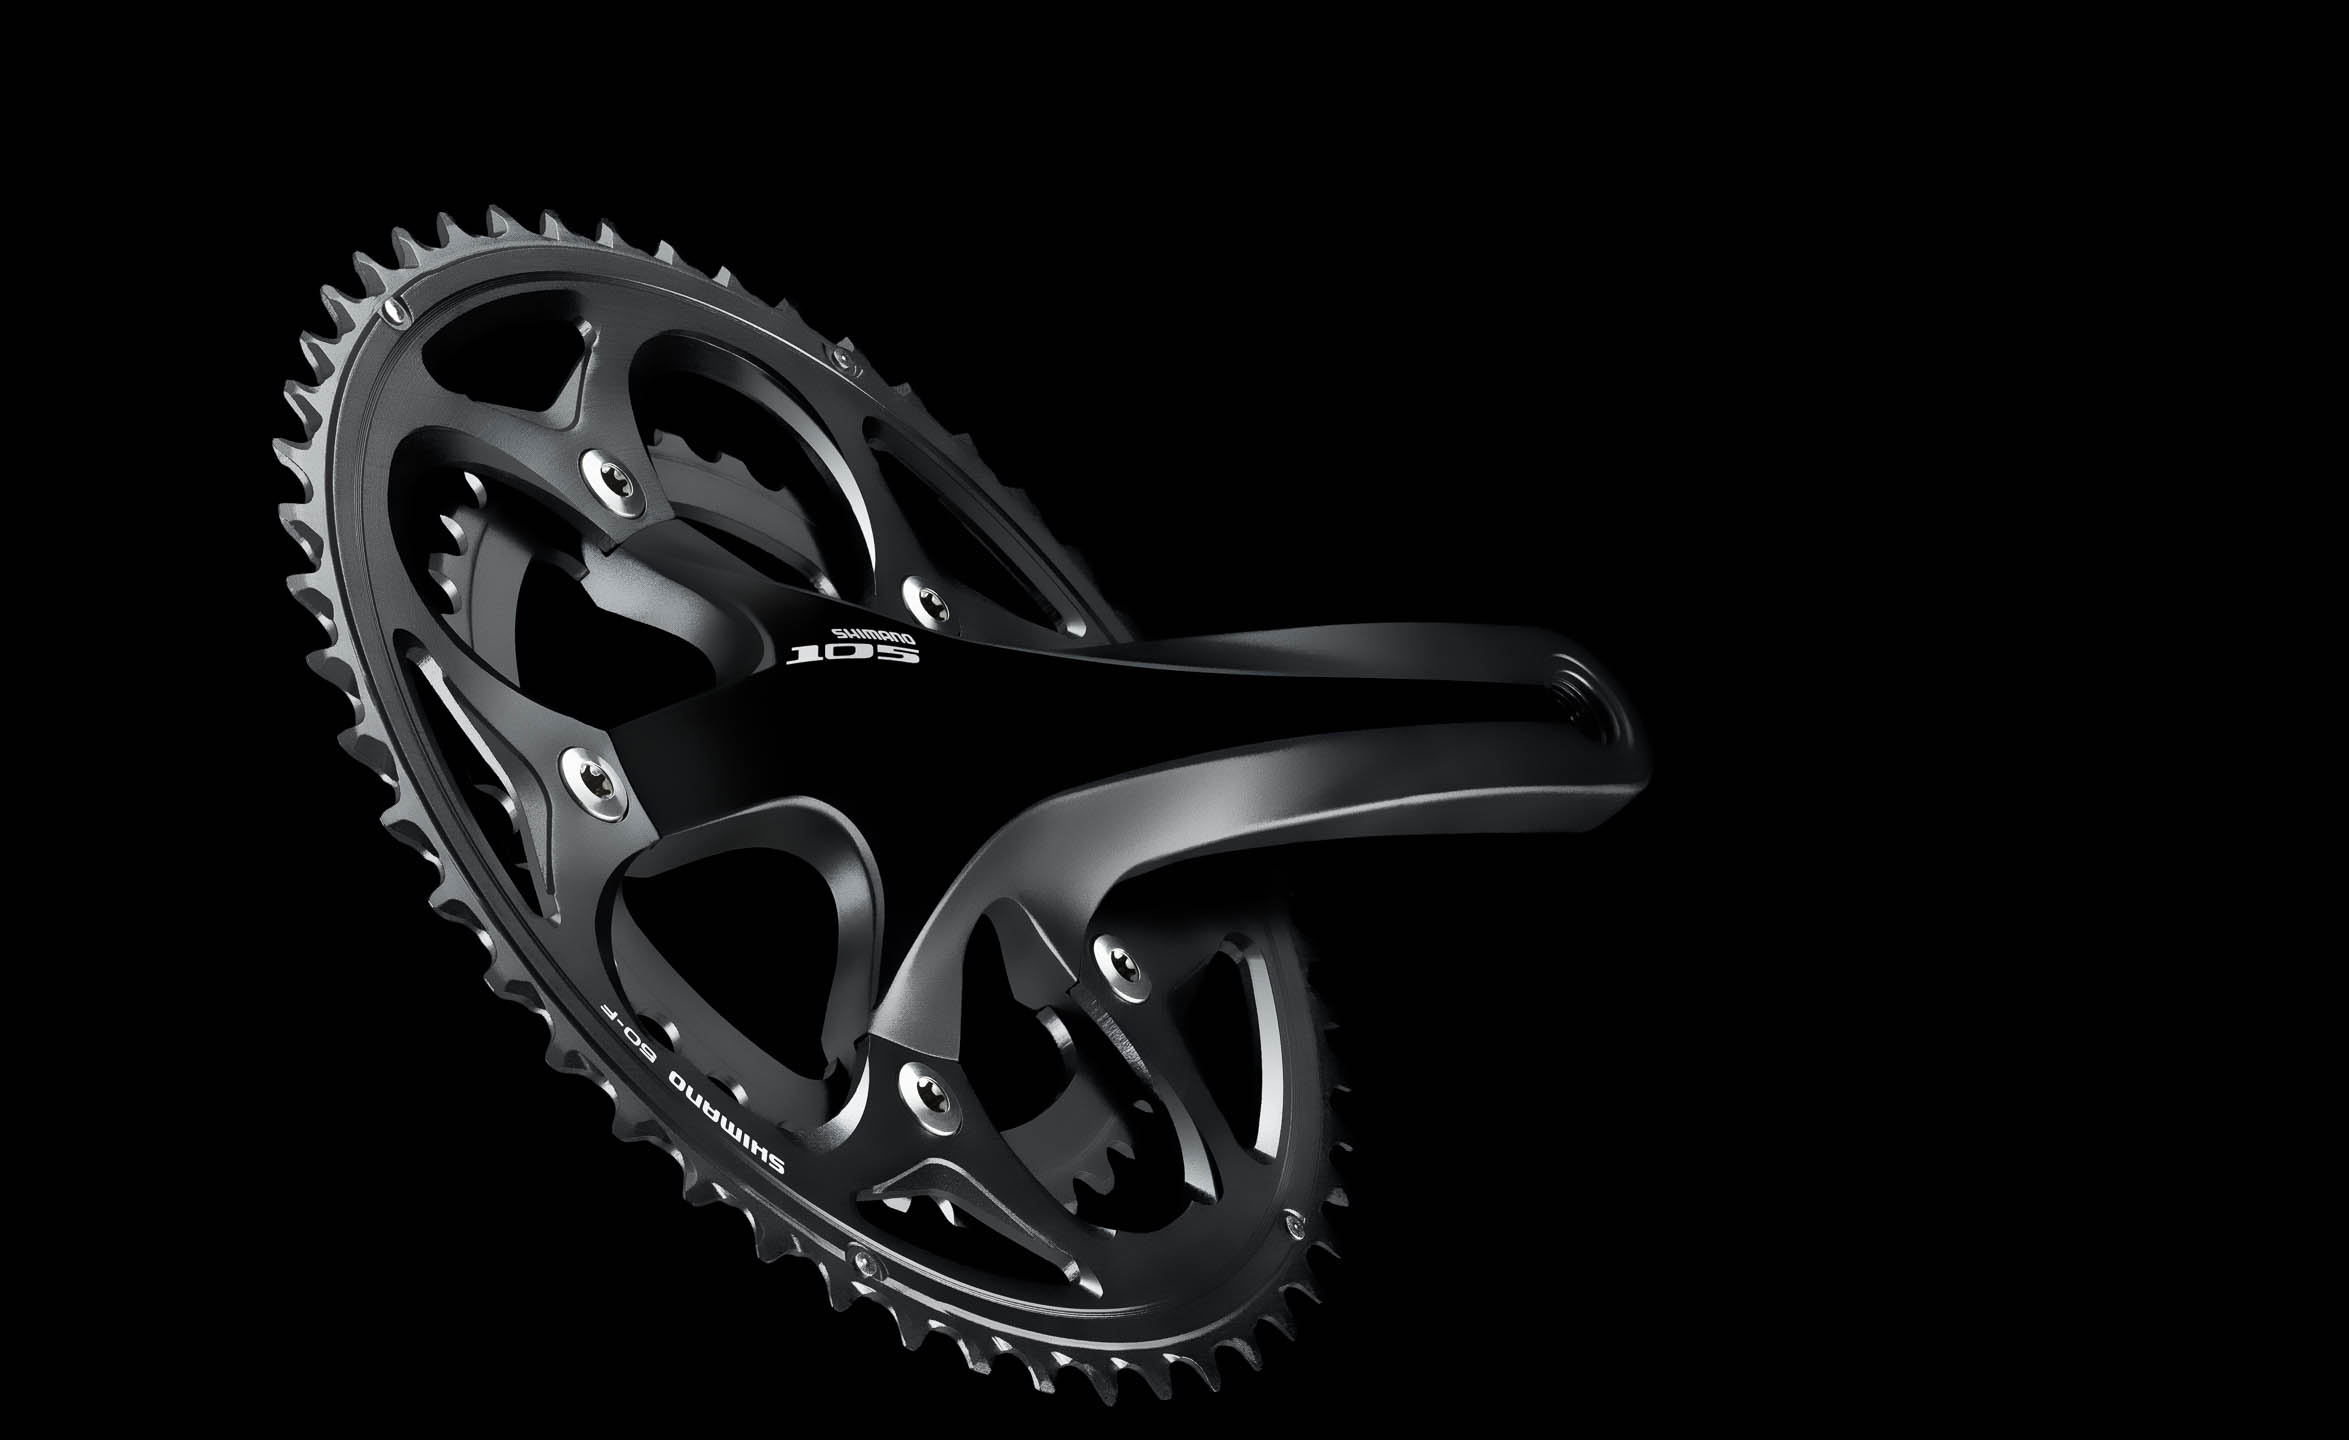 Shimano 105 crankset on black by Steve Temple Photography